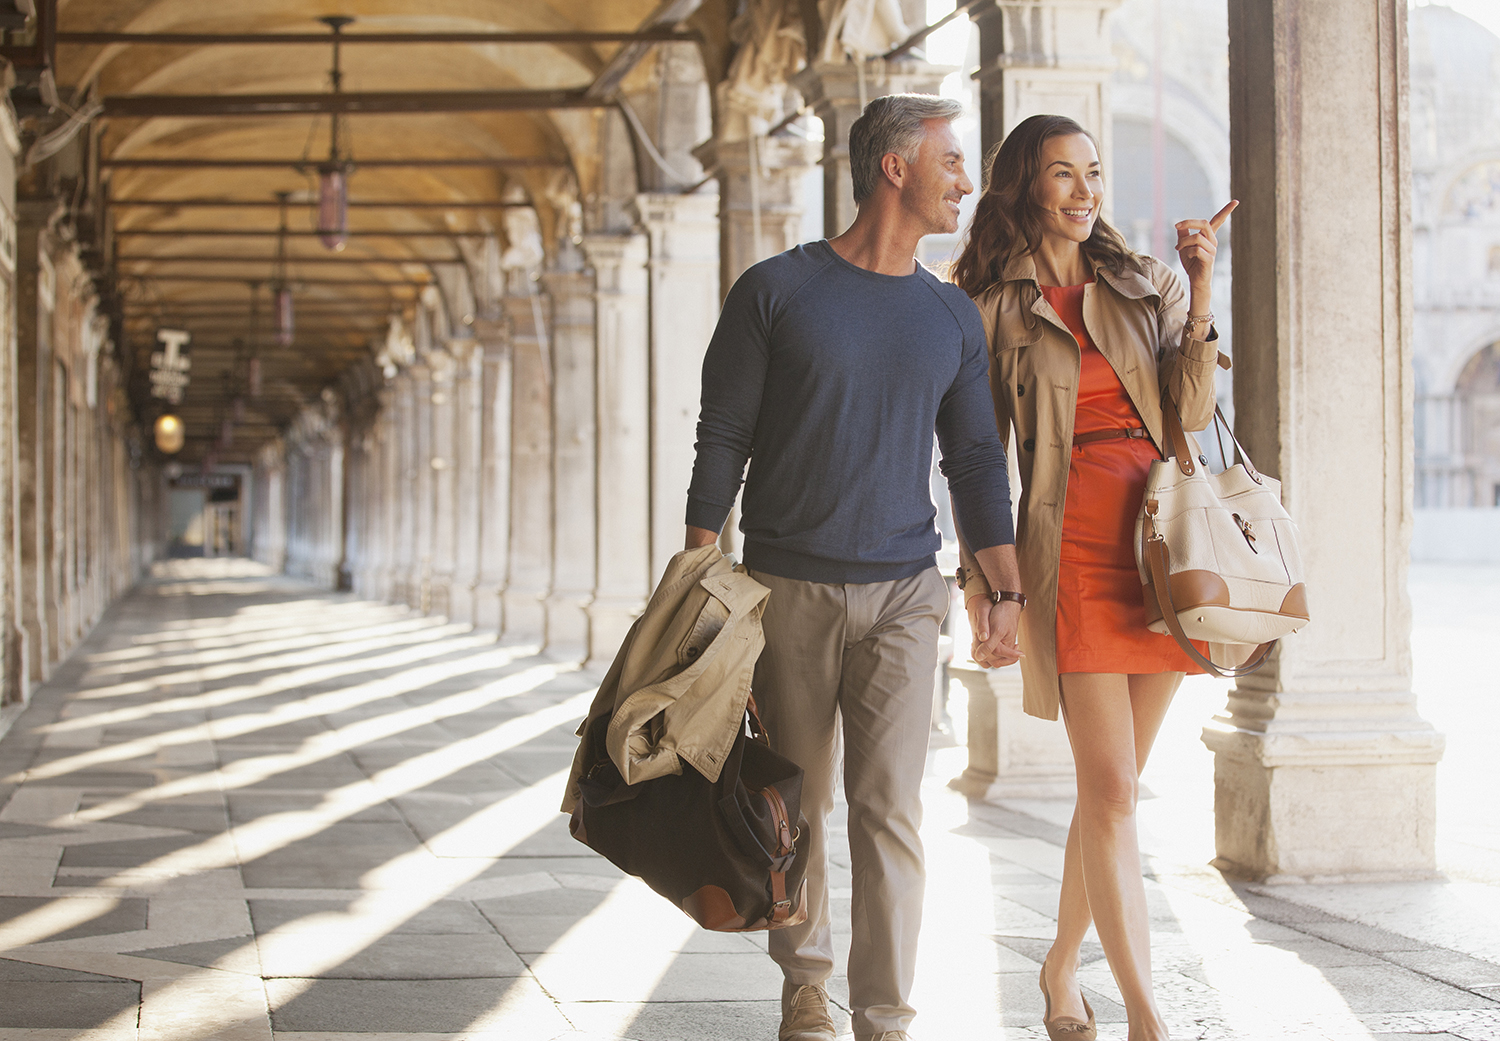 9 Tips for Traveling with Your Significant Other